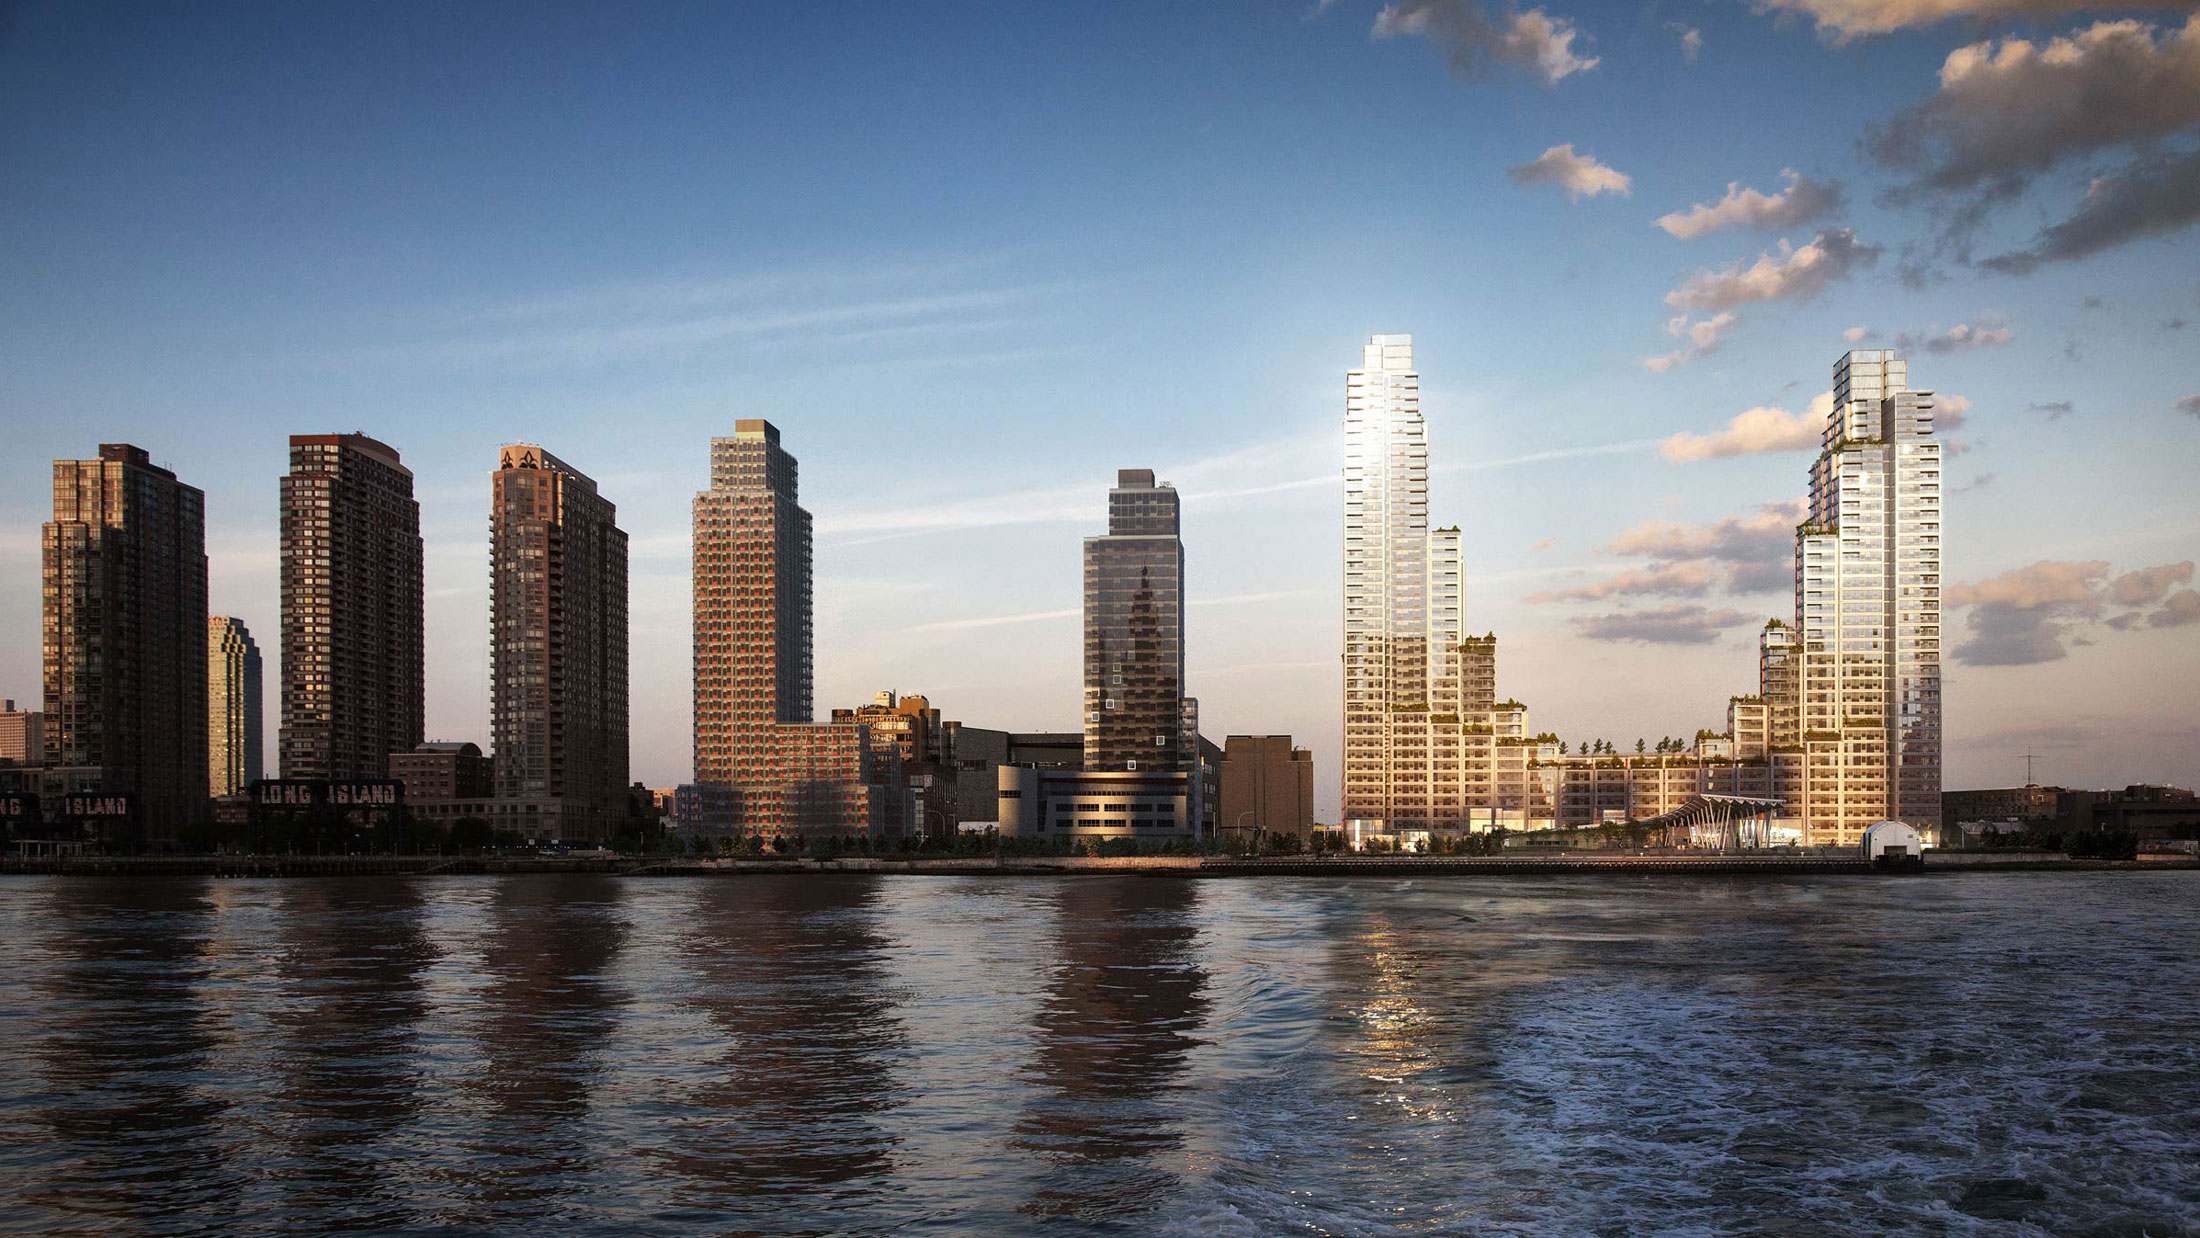 Architectural Rendering of the view from the ferry of the Hunter's Point South project located in Queens, New York